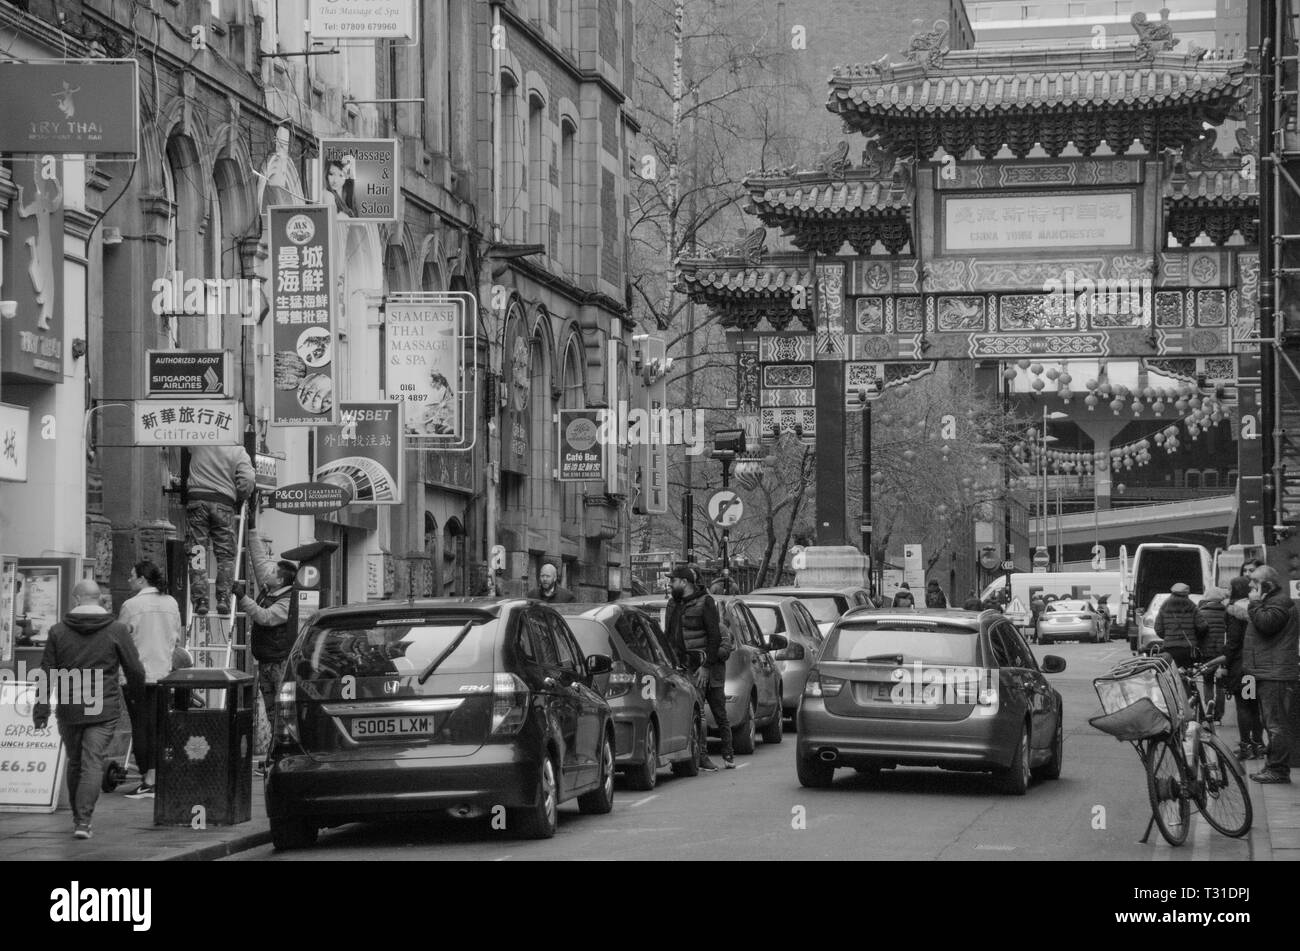 China Town area in Manchester City Centre, England, UK. - Stock Image